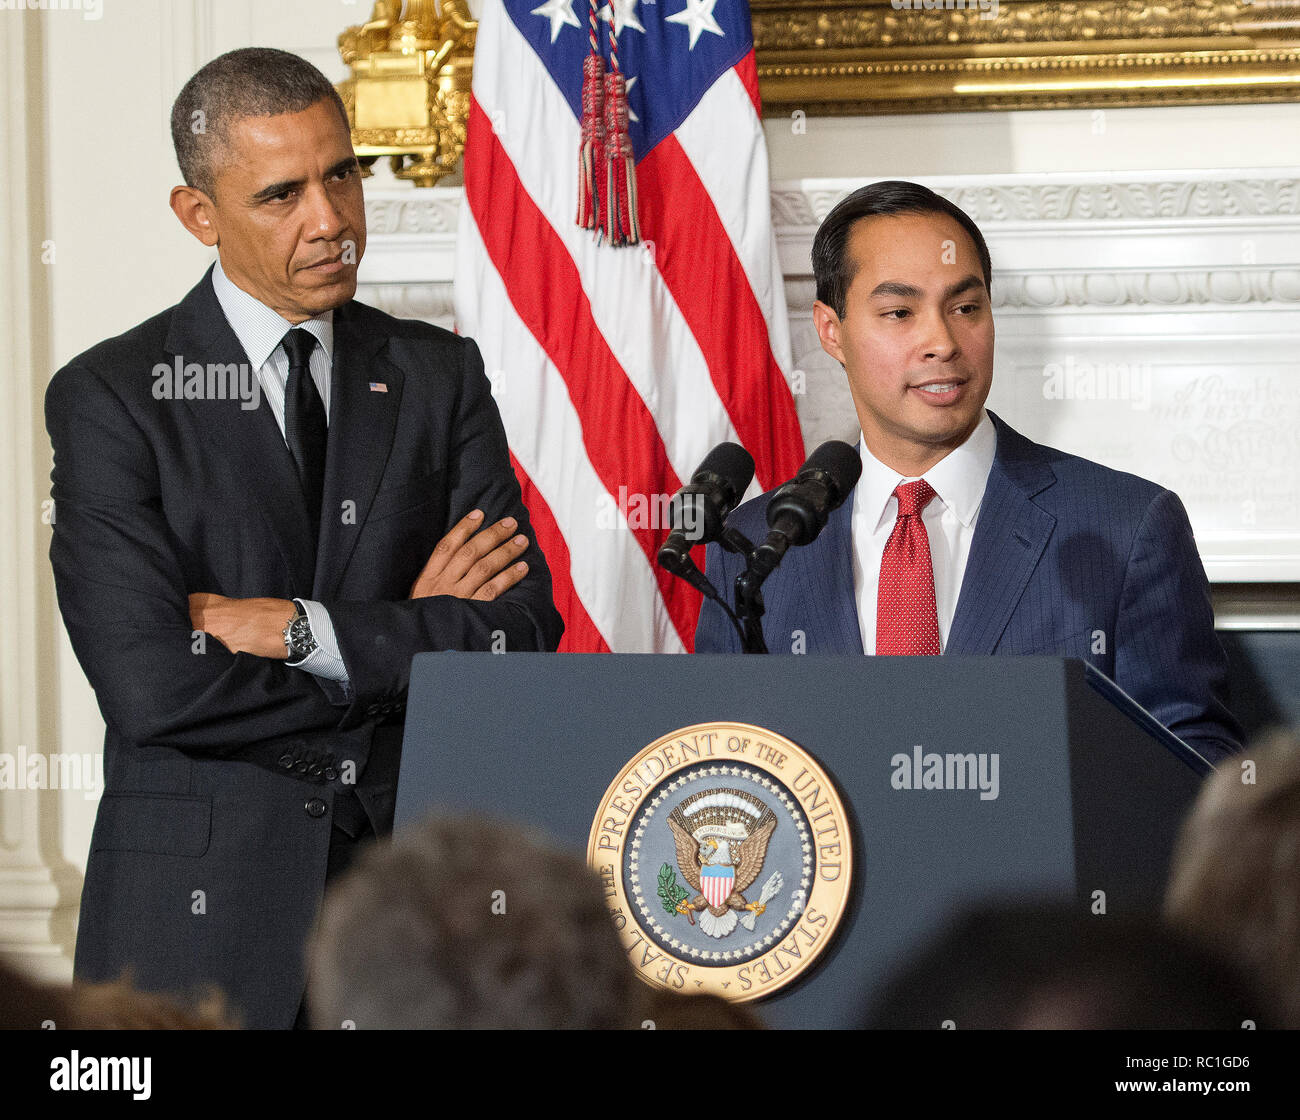 United States President Barack Obama, left, announces his nomination of San Antonio Mayor Julián Castro, right, as U.S. Secretary of Housing and Urban Development (HUD) replacing current HUD Secretary Shaun Donovan (not pictured) who has been nominated to be Office of Management and Budget (OMB) Director in the State Dining Room of the White House in Washington, DC on Friday, May 23, 2014. Credit: Ron Sachs/Pool via CNP | usage worldwide Stock Photo